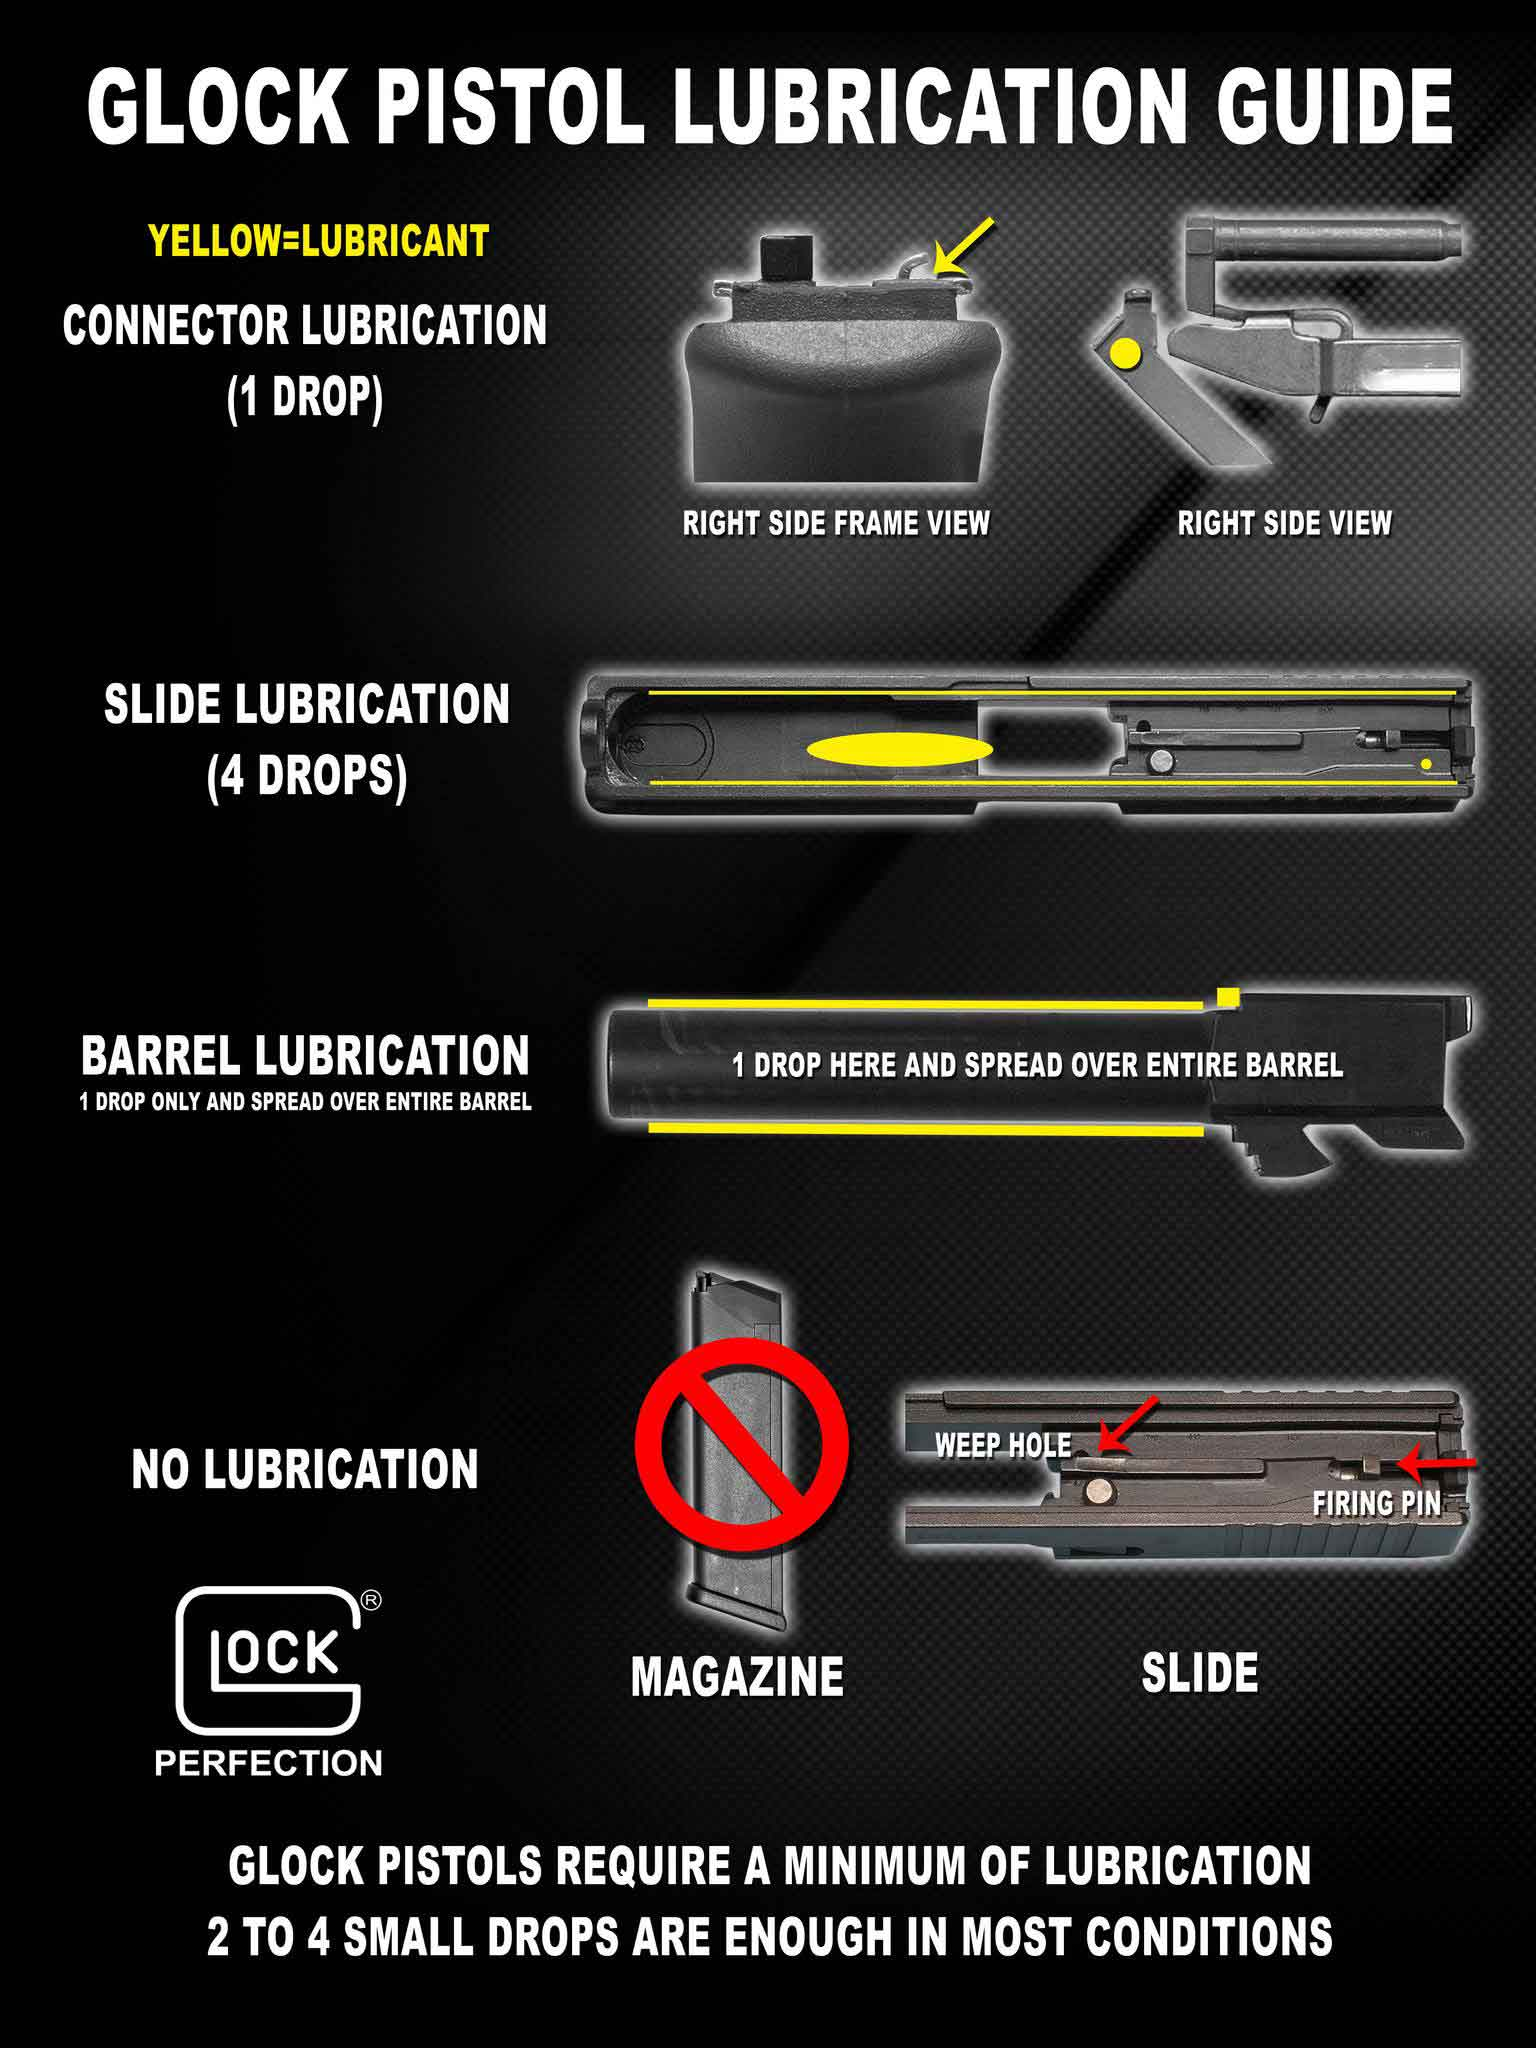 Glock-Pistol-Lubrication-Guide